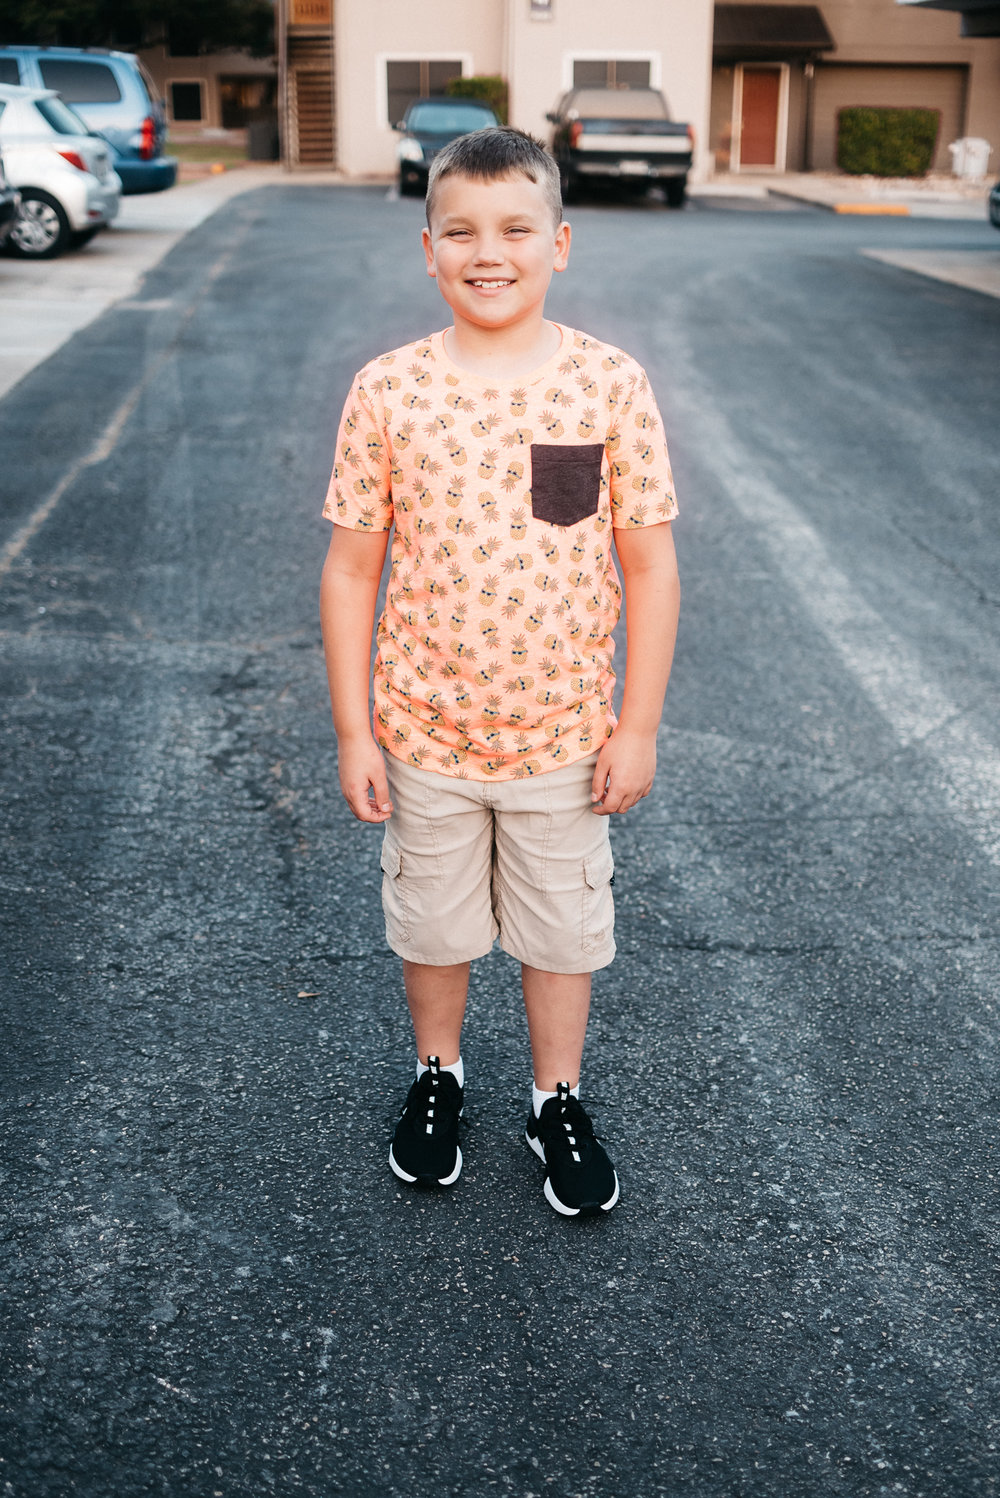 samantha whitford photography first day of school-2.jpg